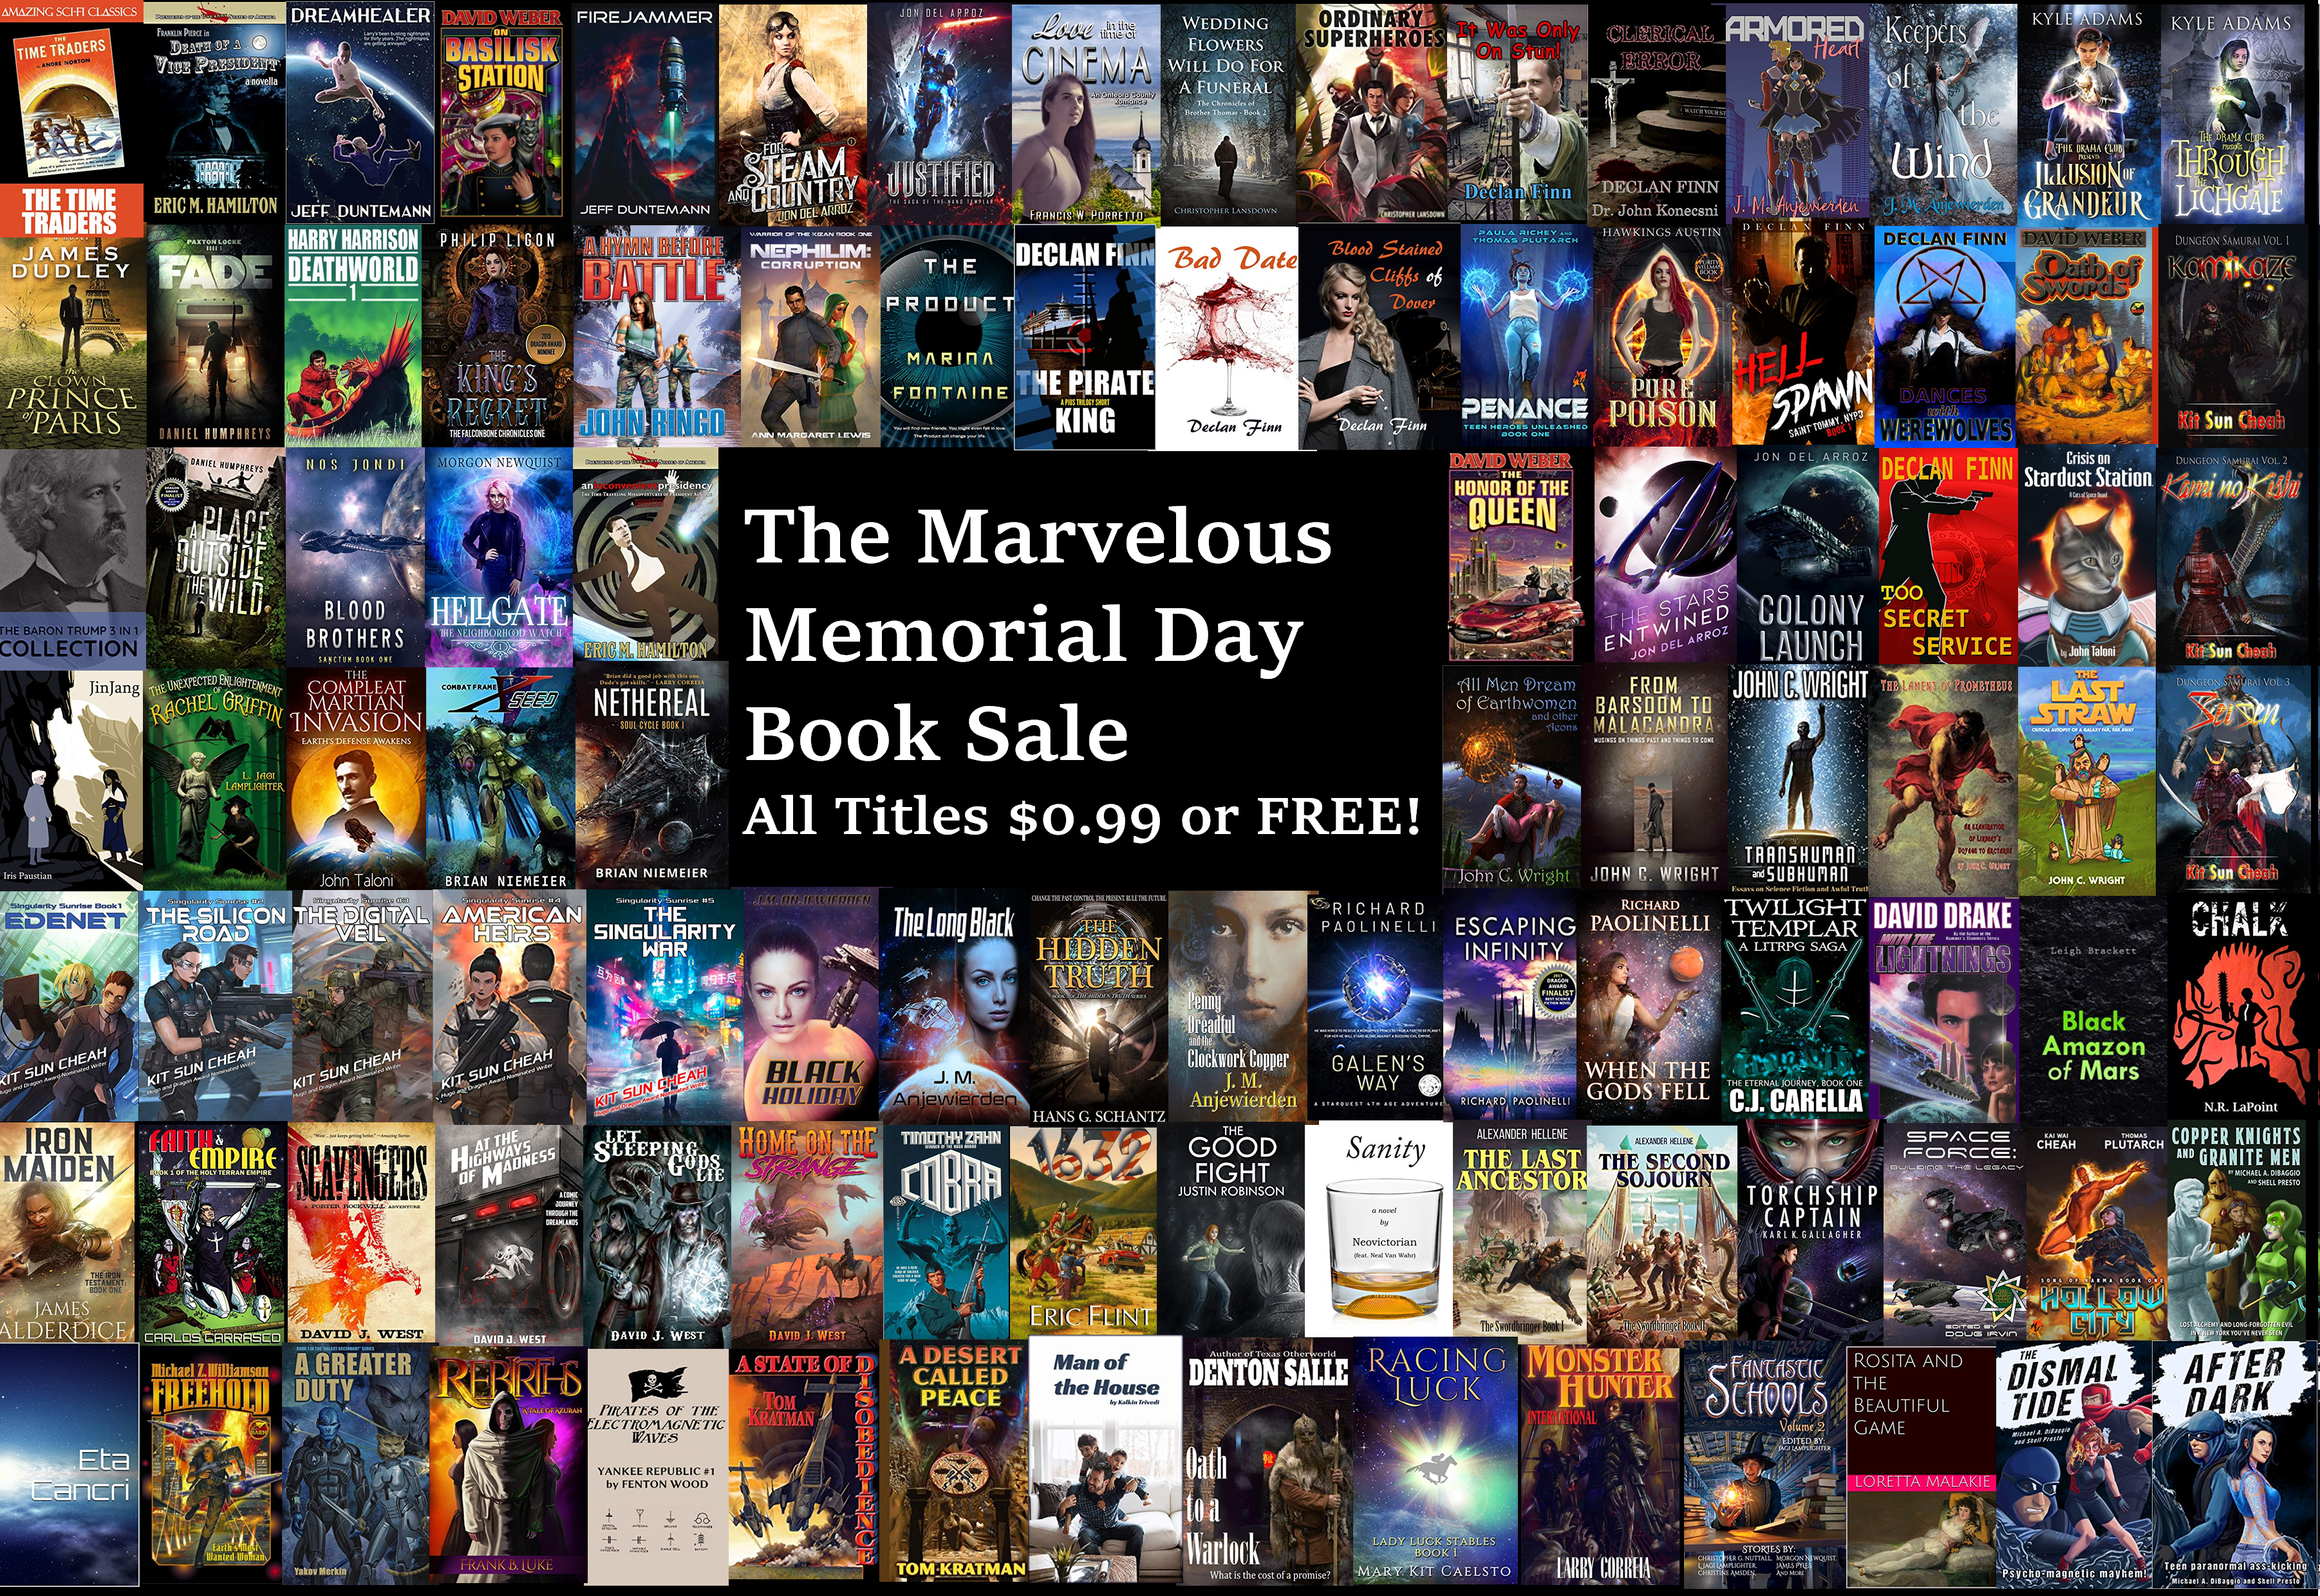 The Marvelous Memorial Day $0.99 (or Free!) Book Sale